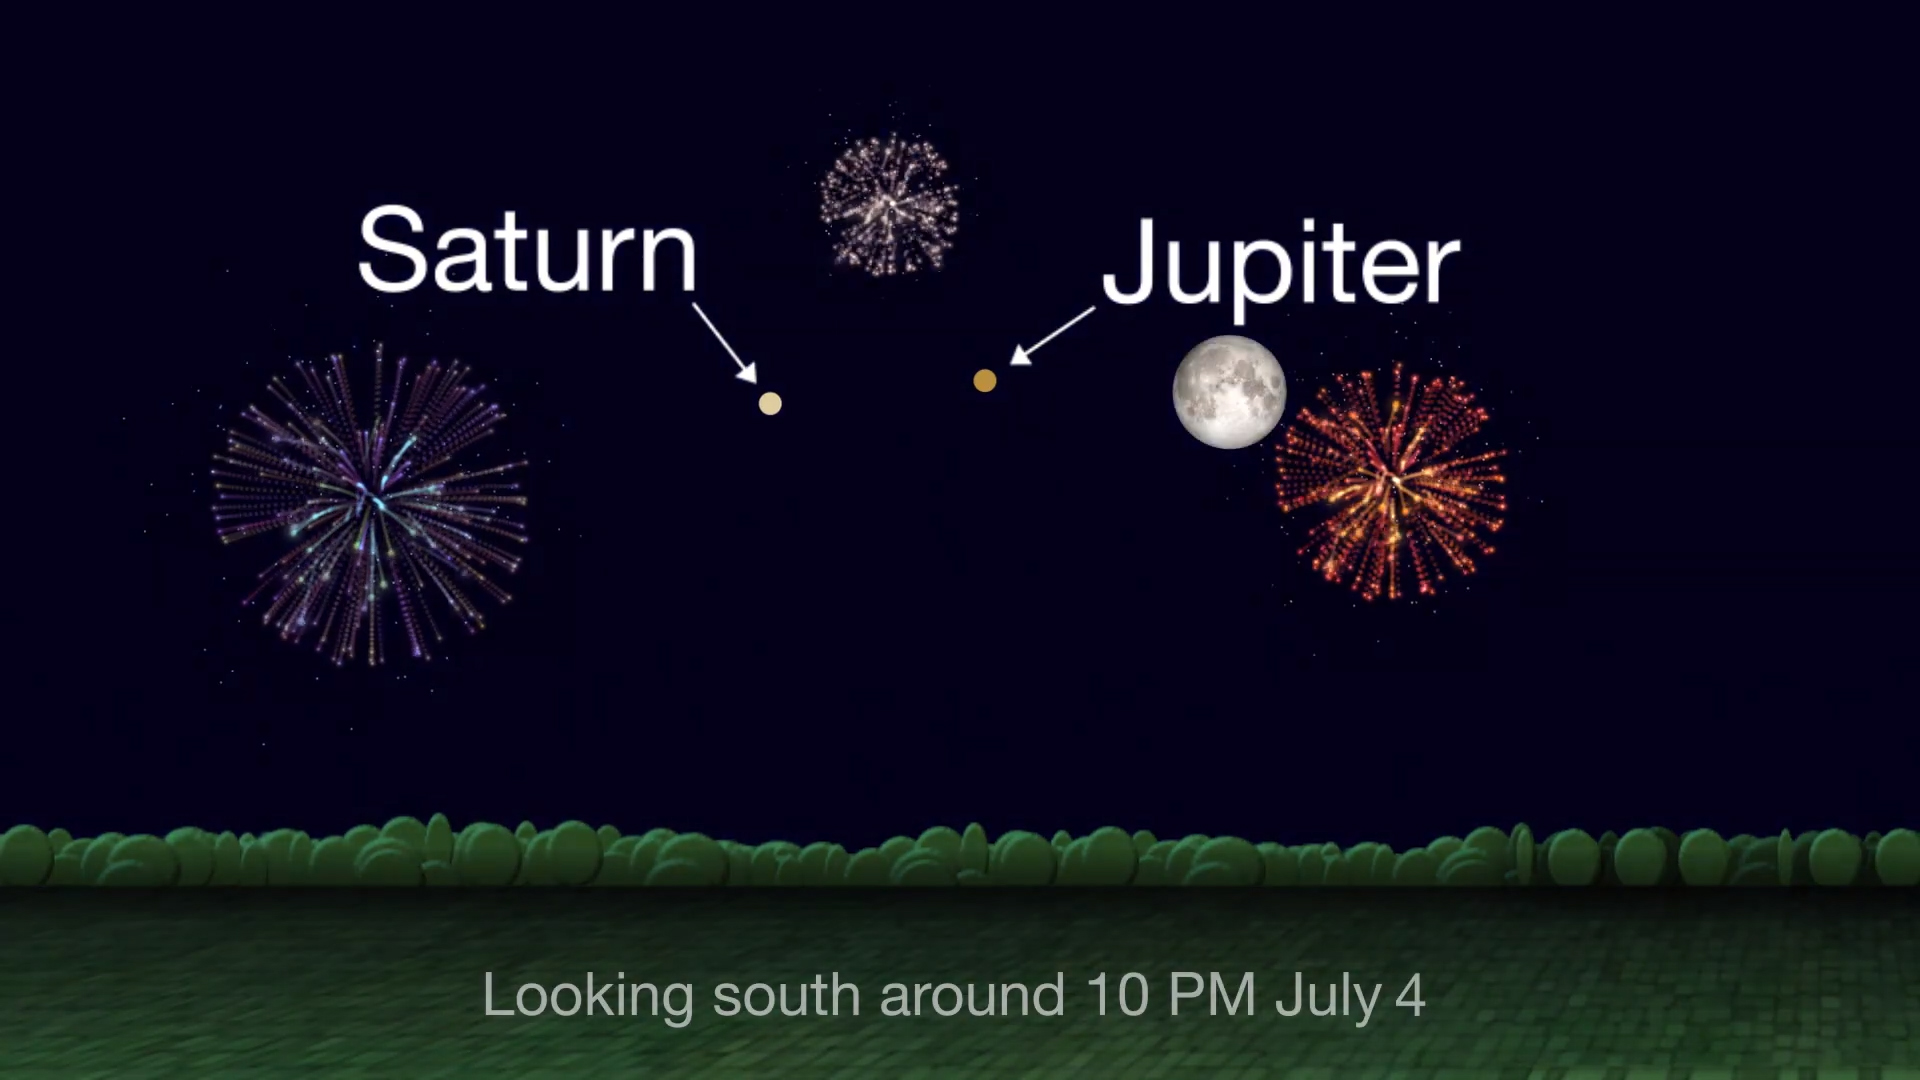 Sky chart showing positions of the Moon, Jupiter and Saturn on July 4th with fireworks graphics.